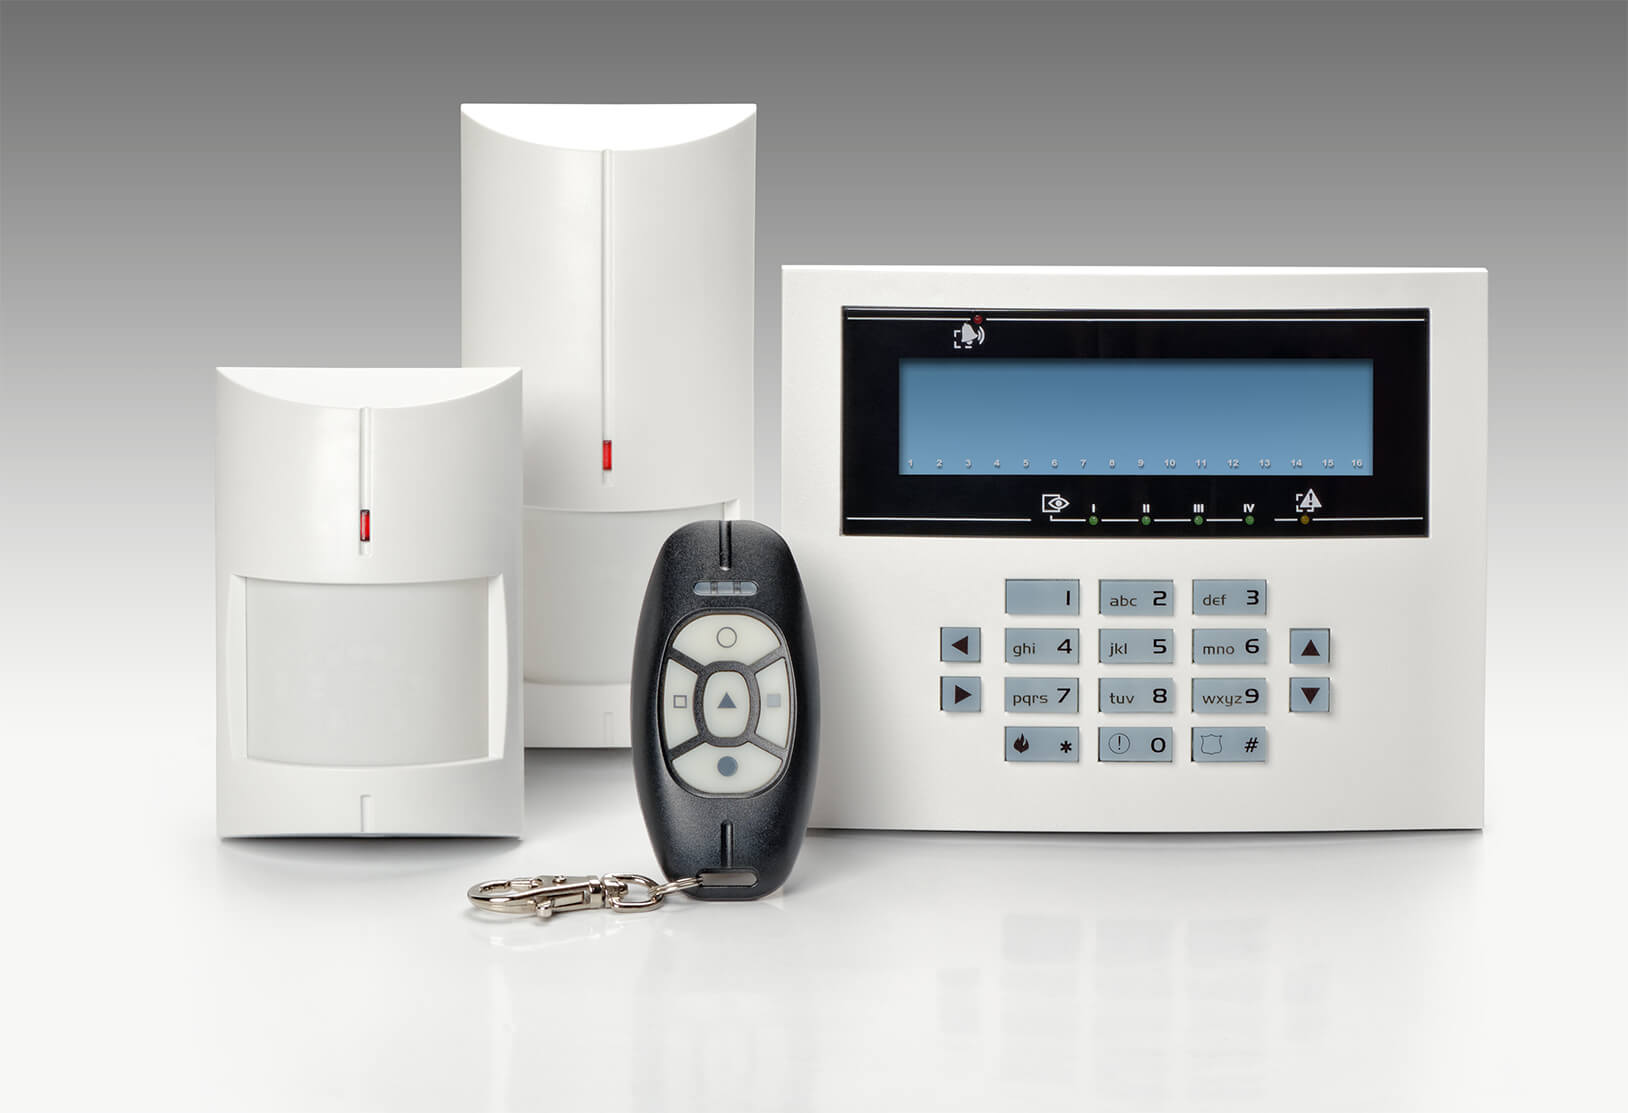 residential NSI Approved {alarms} In Earl\\\'s Court SW5 - Local Earl\\\'s Court SW5 security company.Call 02078872244 - Dedicated to Safety & Security.Trusted by 1000's in Earl\\\'s Court SW5